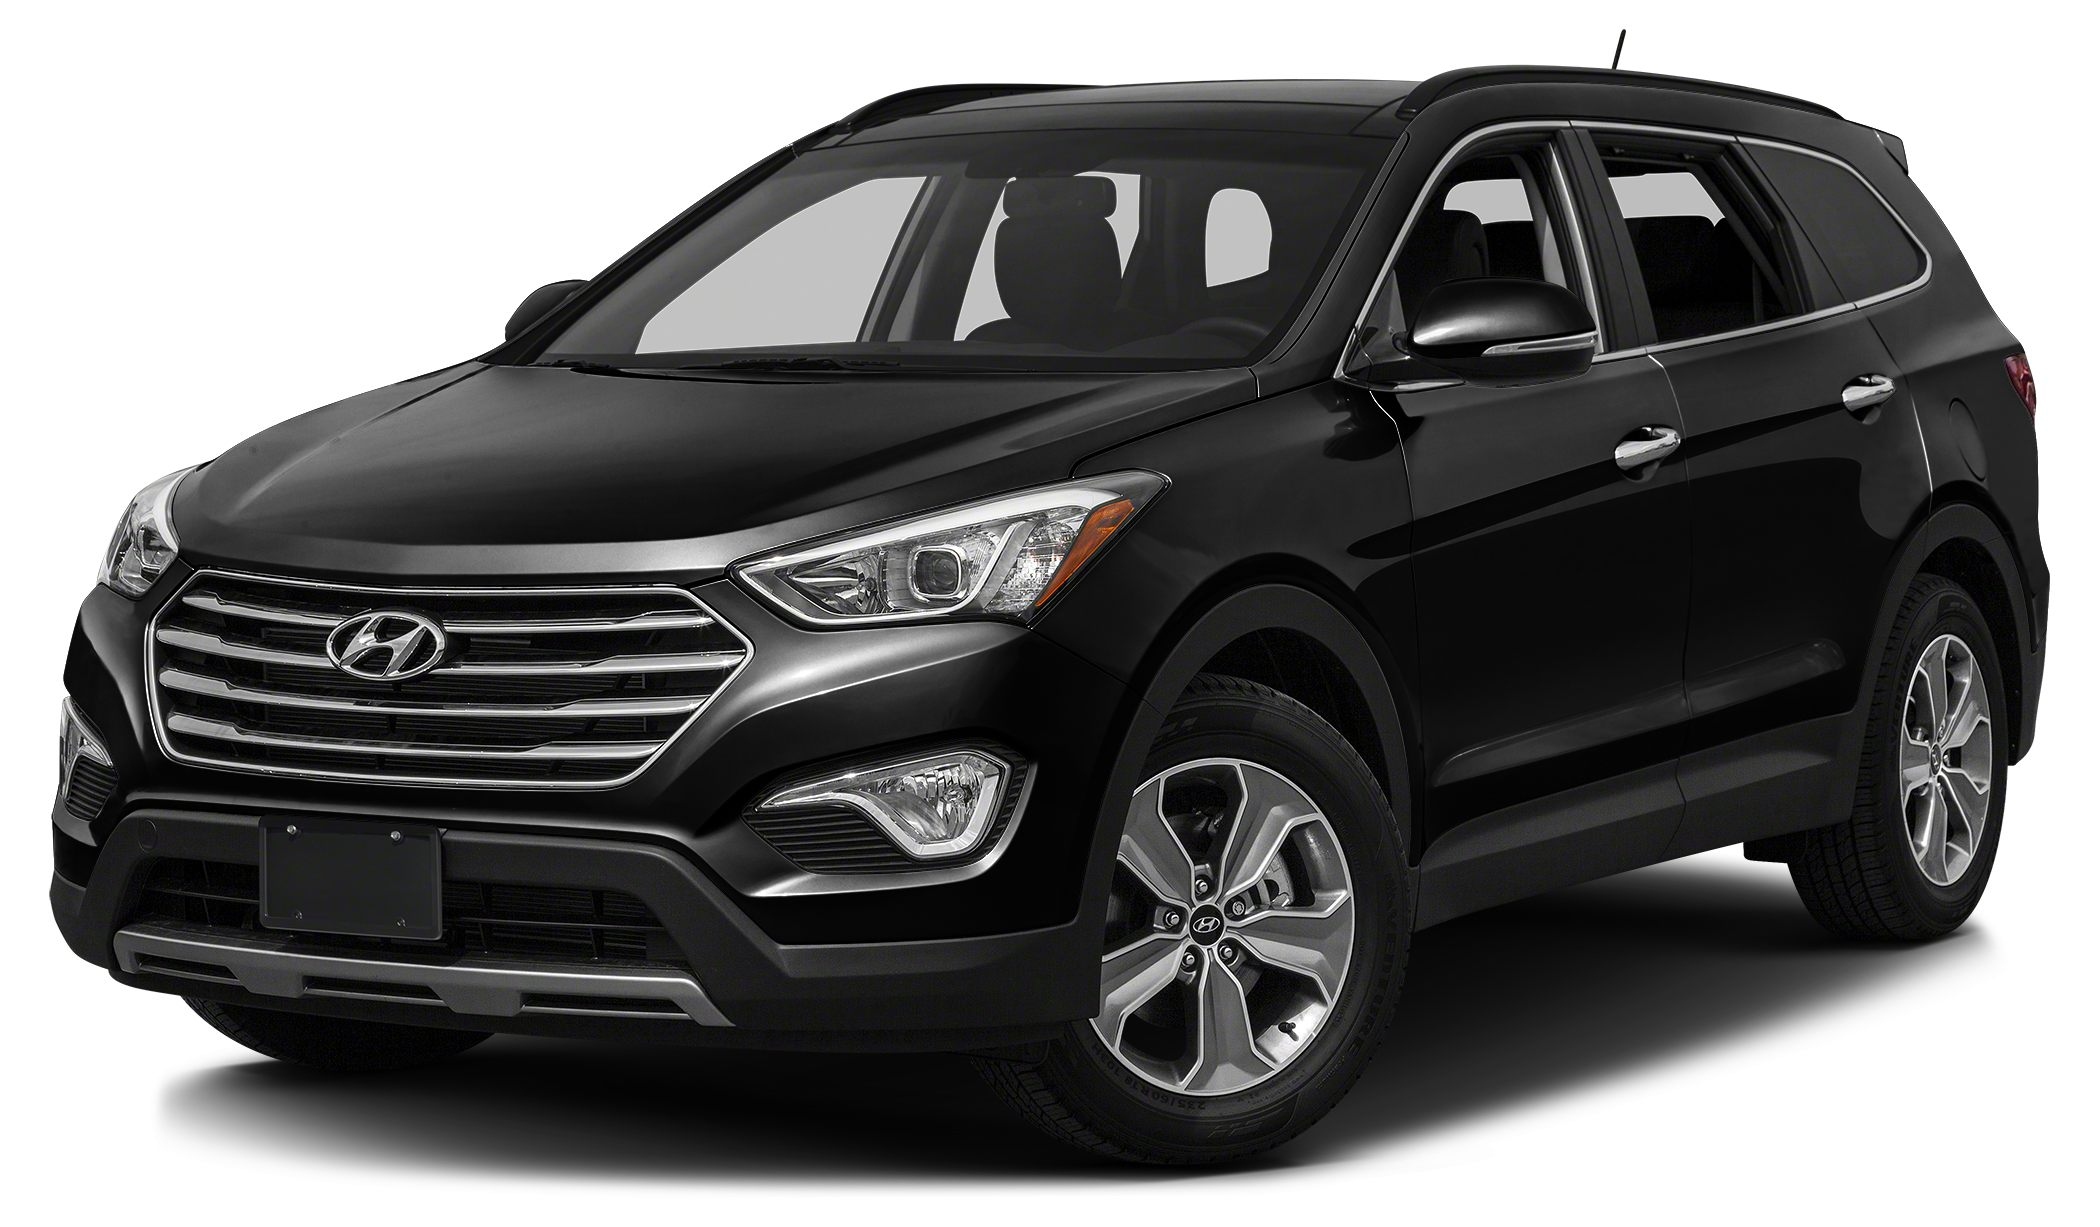 2014 Hyundai Santa Fe Limited Home of the 20yr200k mile warranty Miles 3Color Becketts Black S